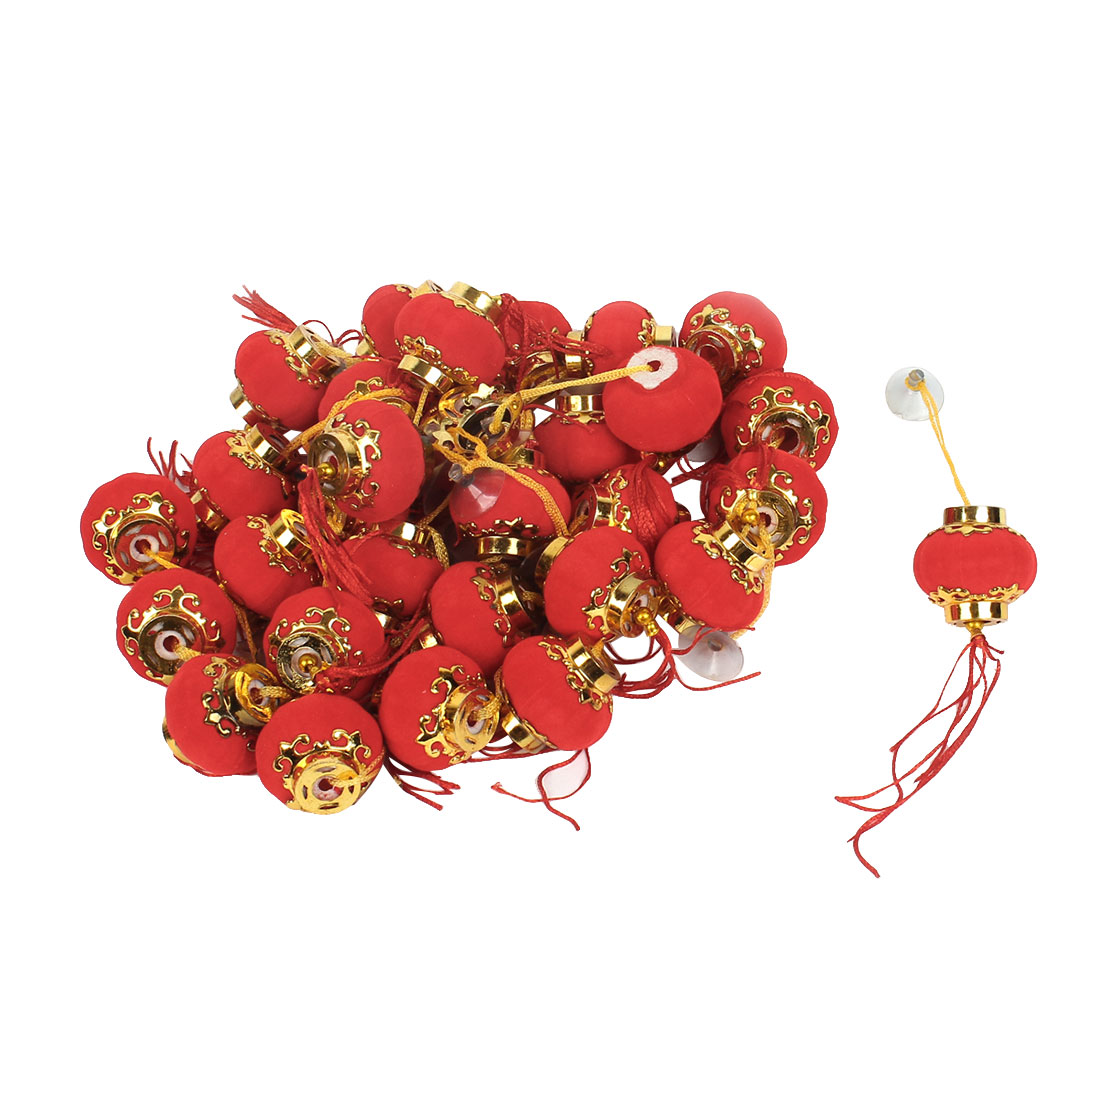 3.7cm Dia Pumpkin Shape Chinese Hanging Lantern Decoration Red 30 Pcs